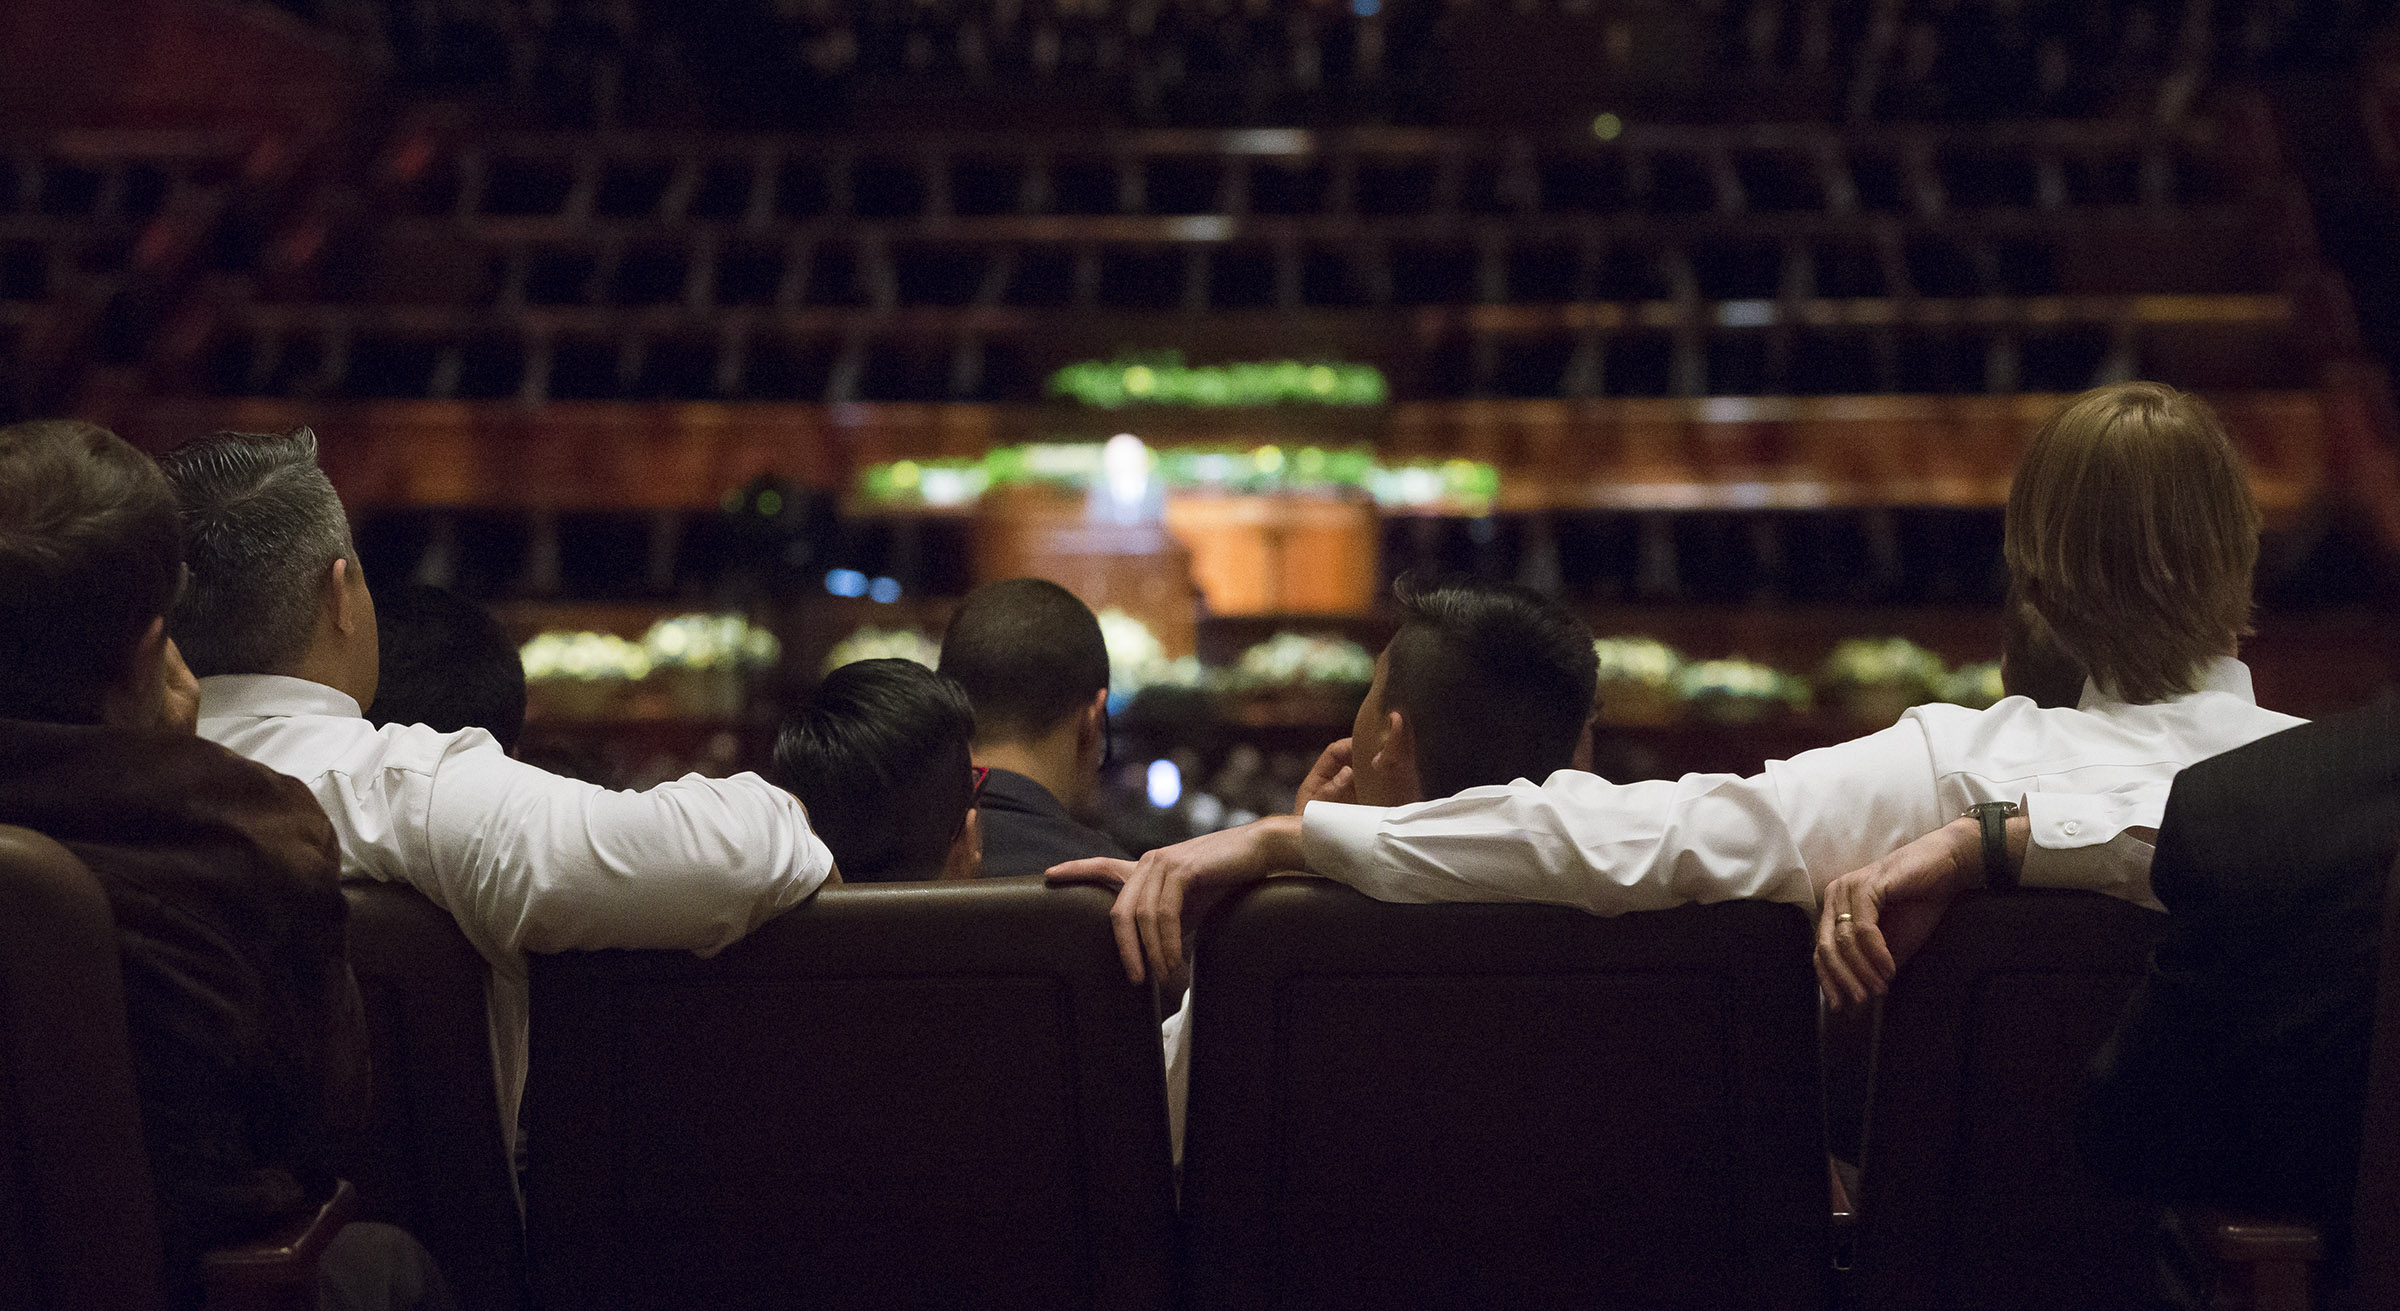 Audience members listen during the general priesthood session of the 188th Annual General Conference of The Church of Jesus Christ of Latter-day Saints in the Conference Center in Salt Lake City on Saturday, March 31, 2018.